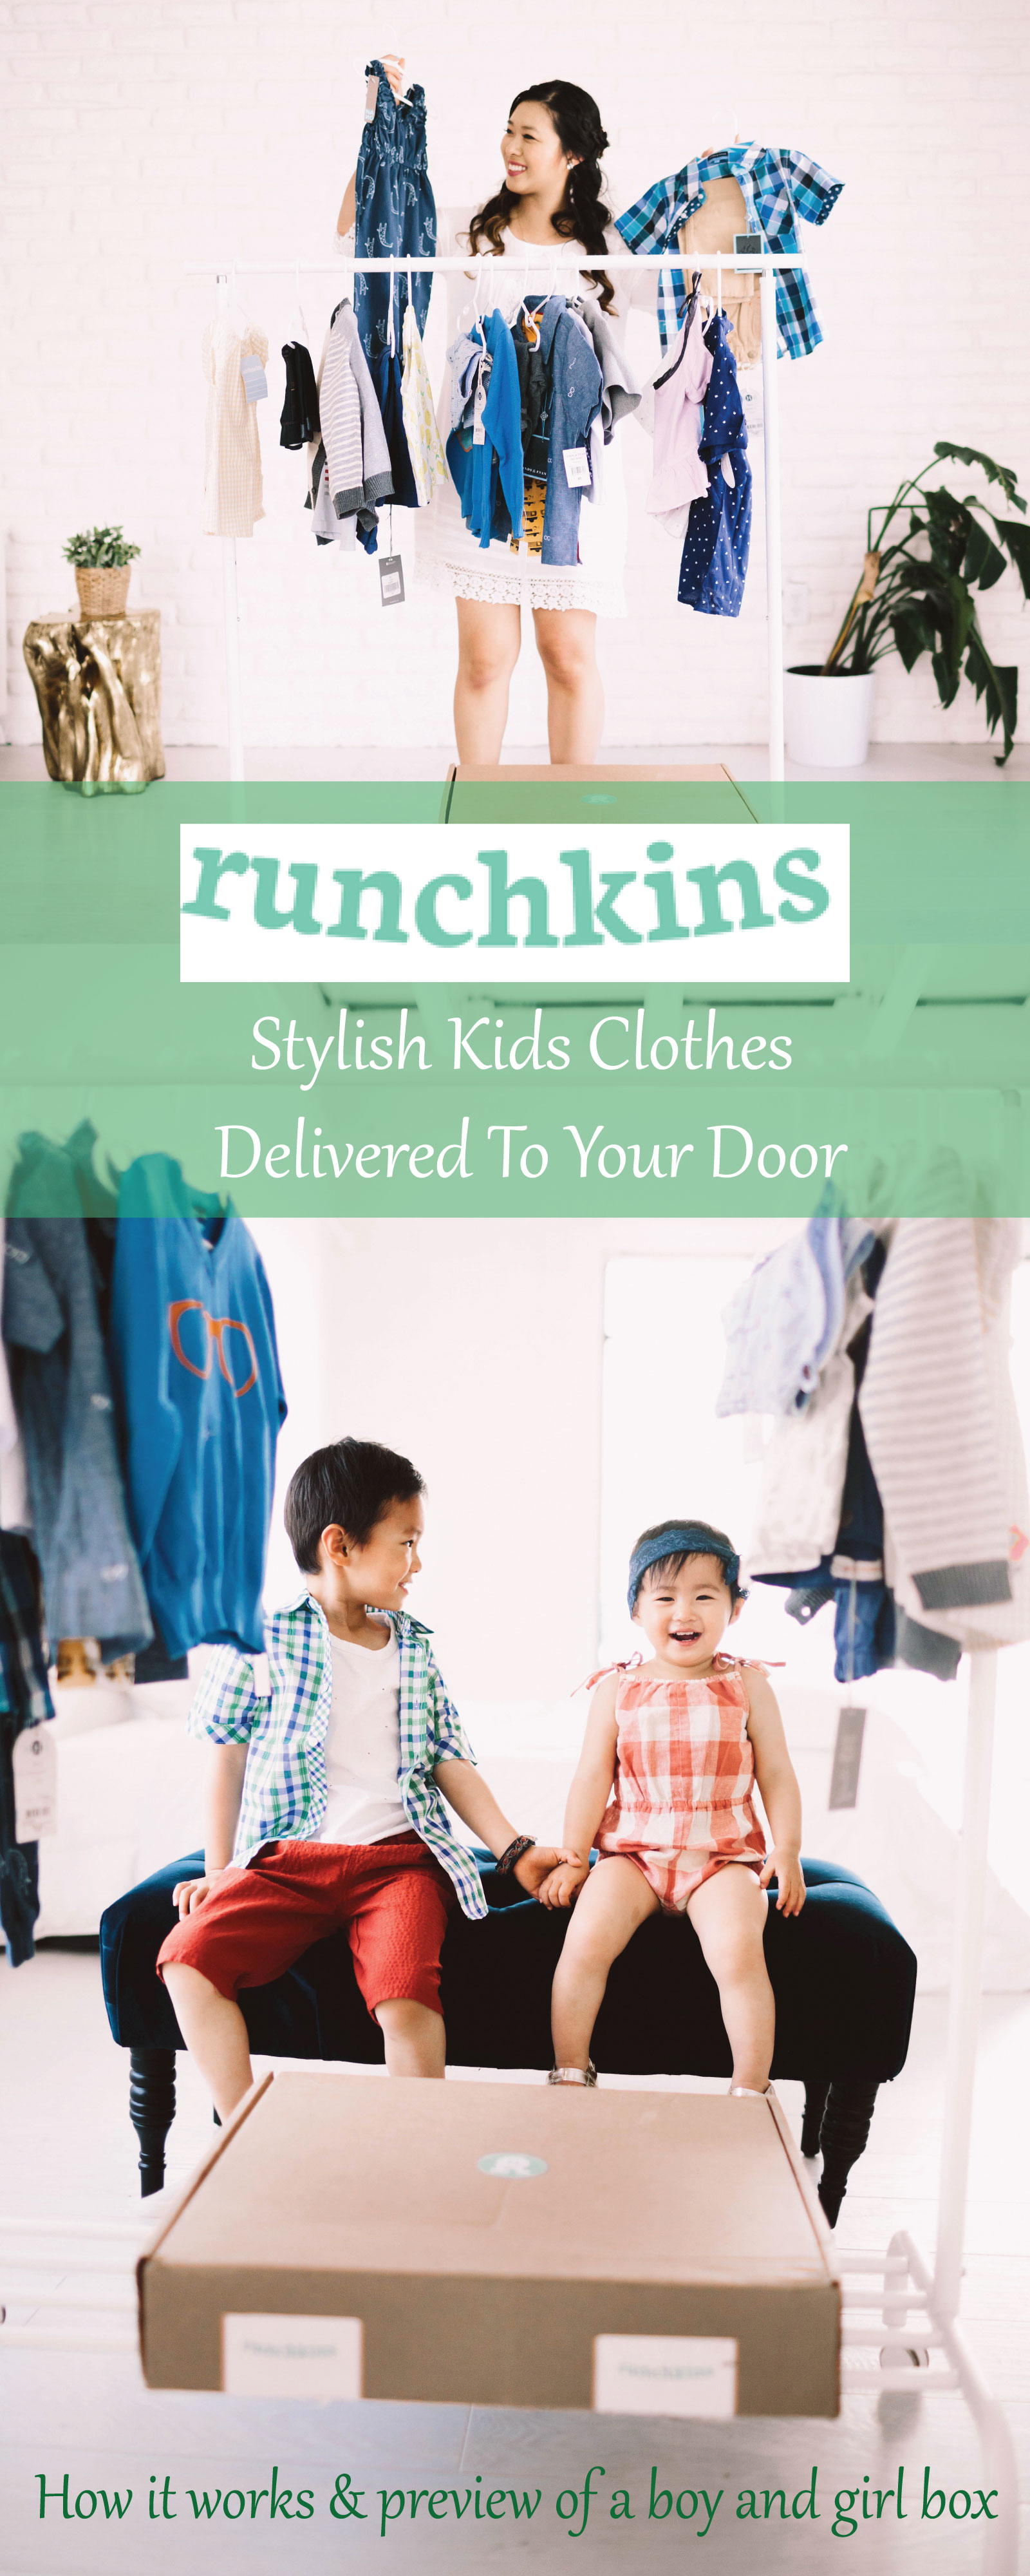 Runchkins - Stylish kids clothes delivered to your door